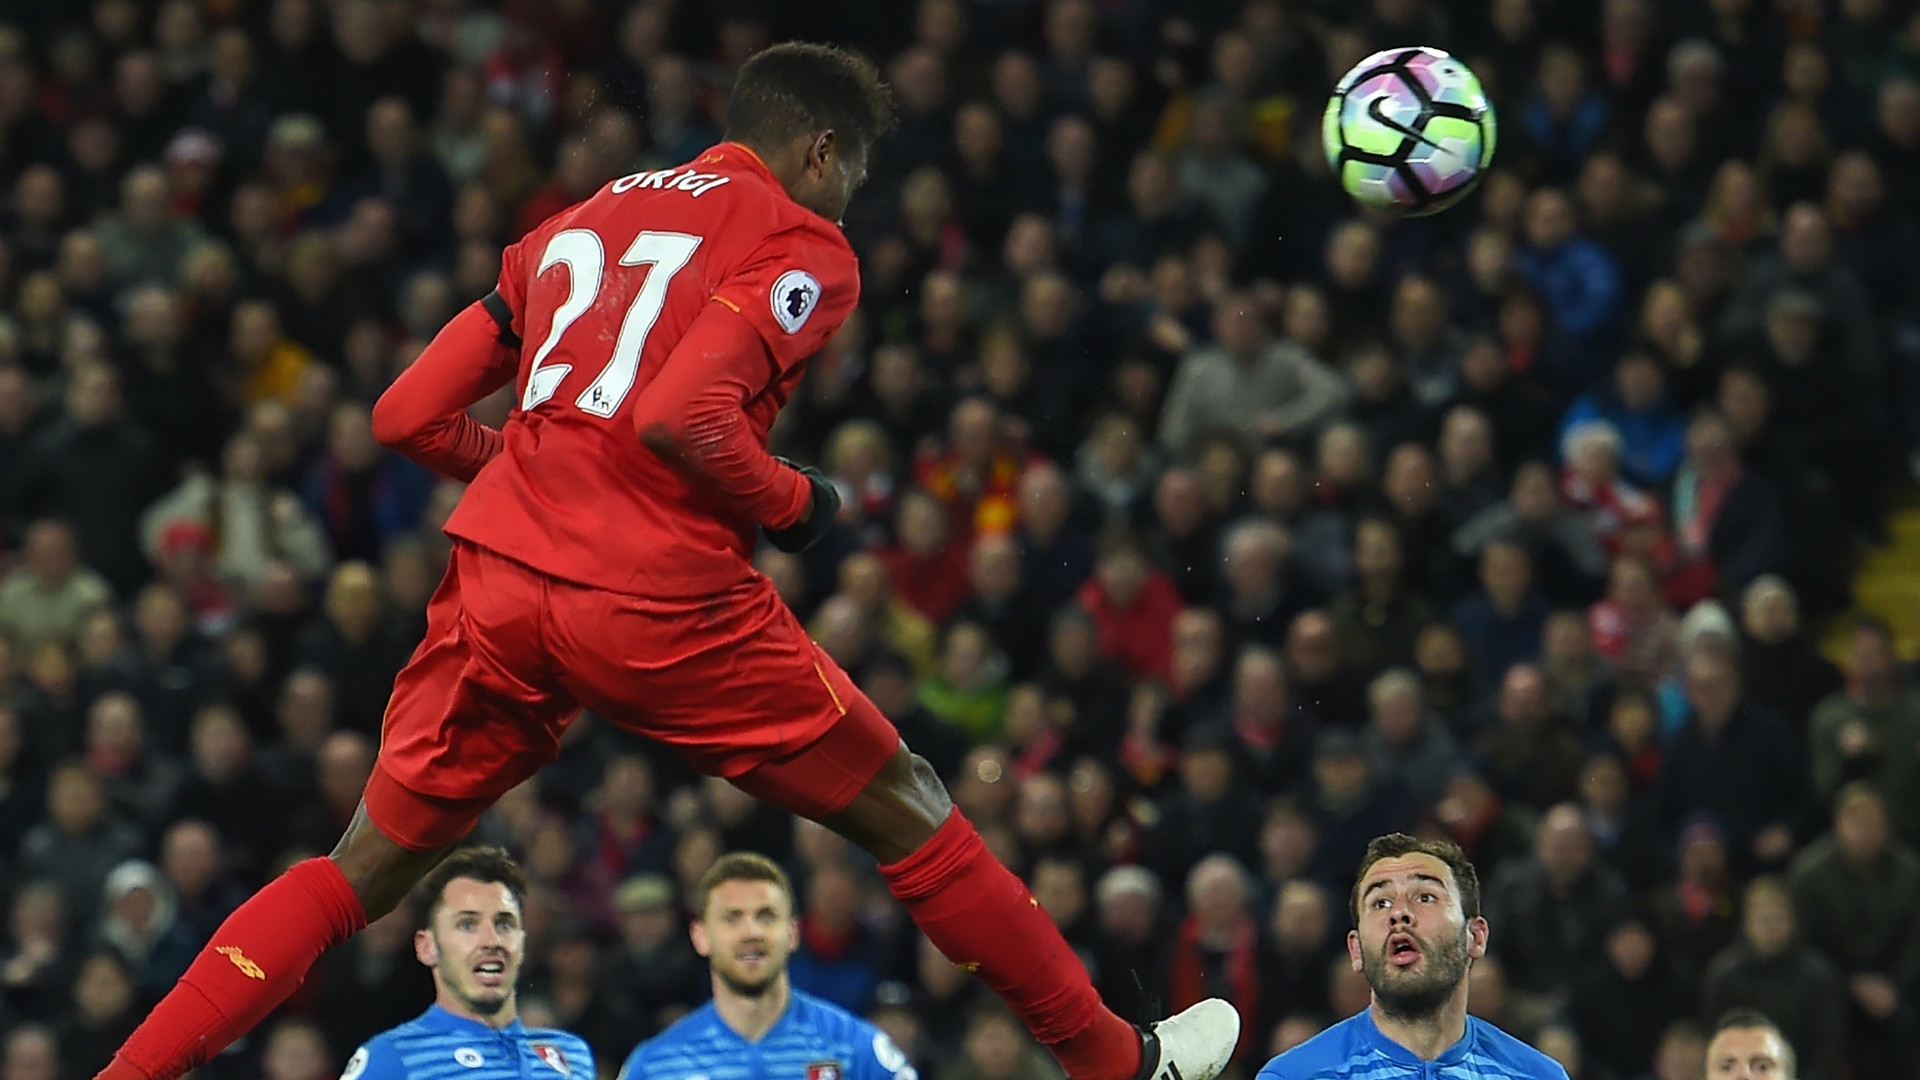 Firmino on target as Reds go 3rd